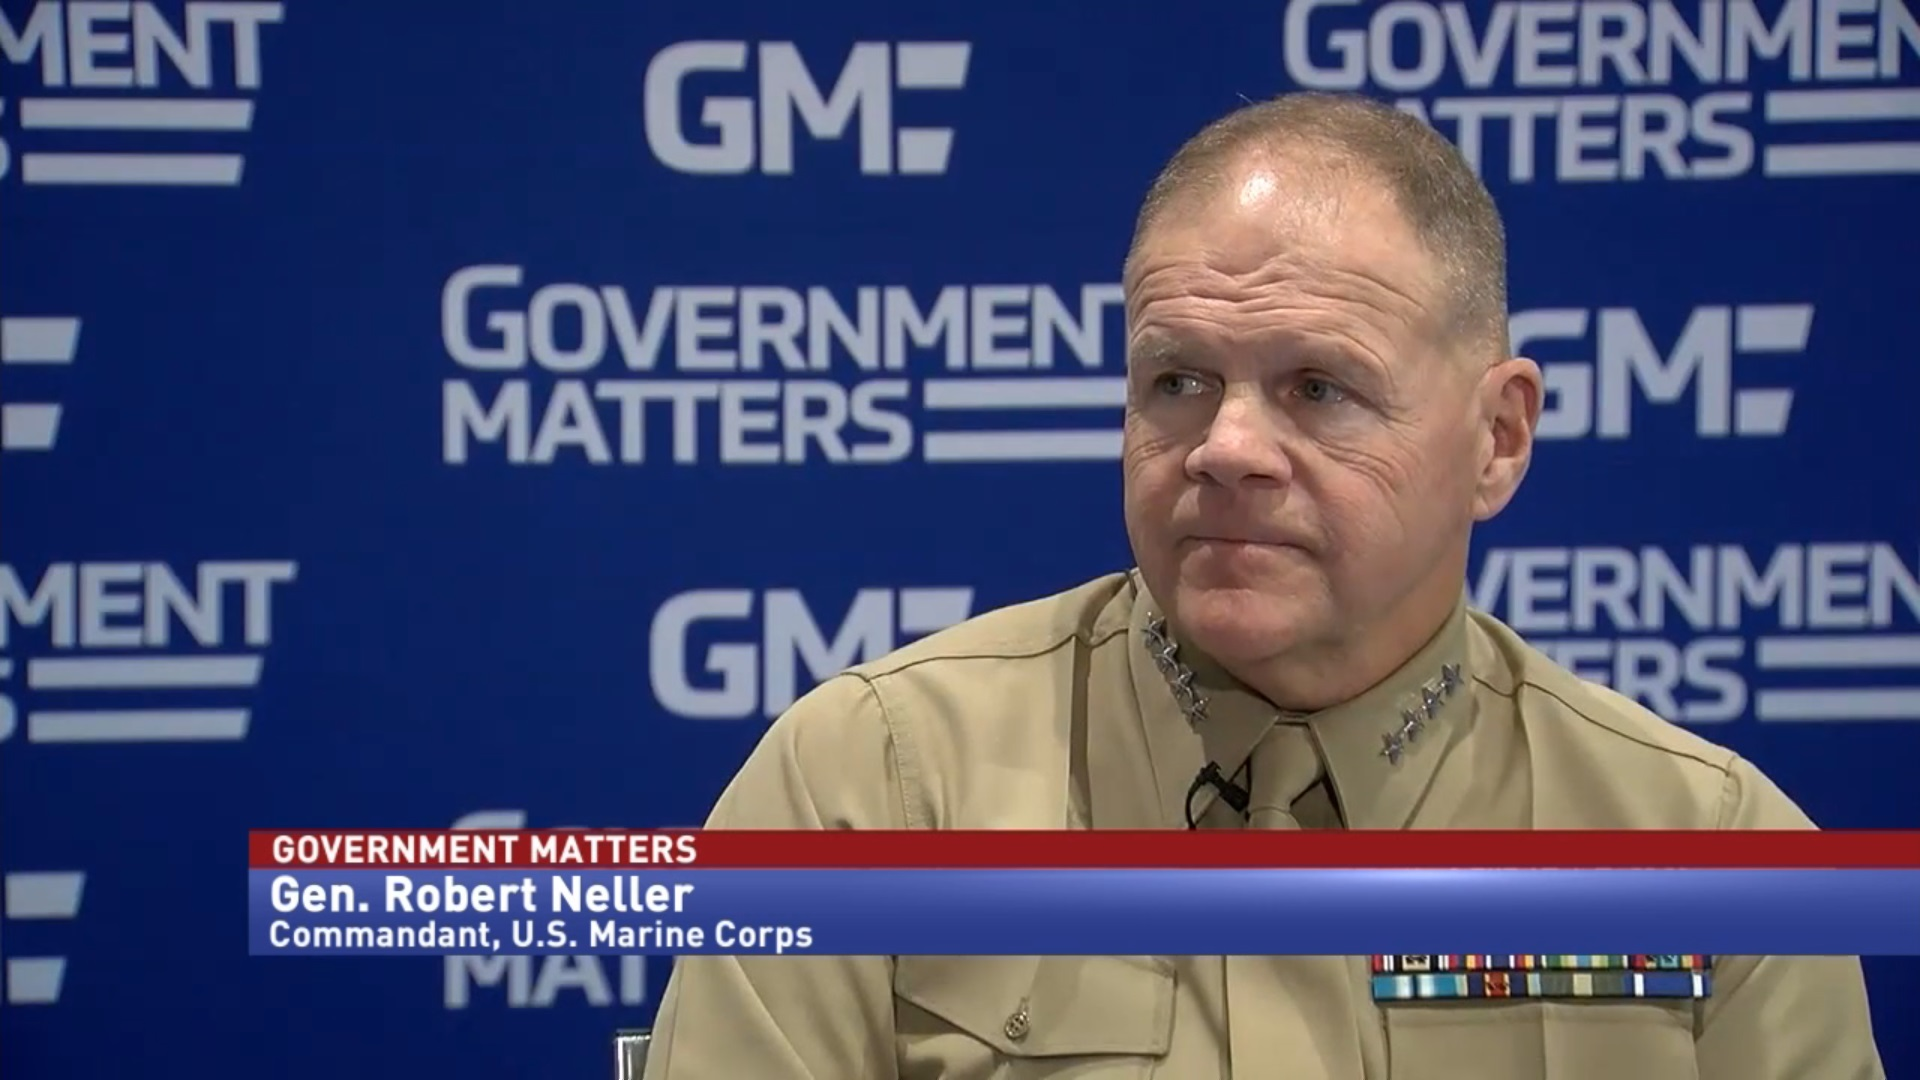 USMC Commandant details efforts to increase readiness & equip personnel